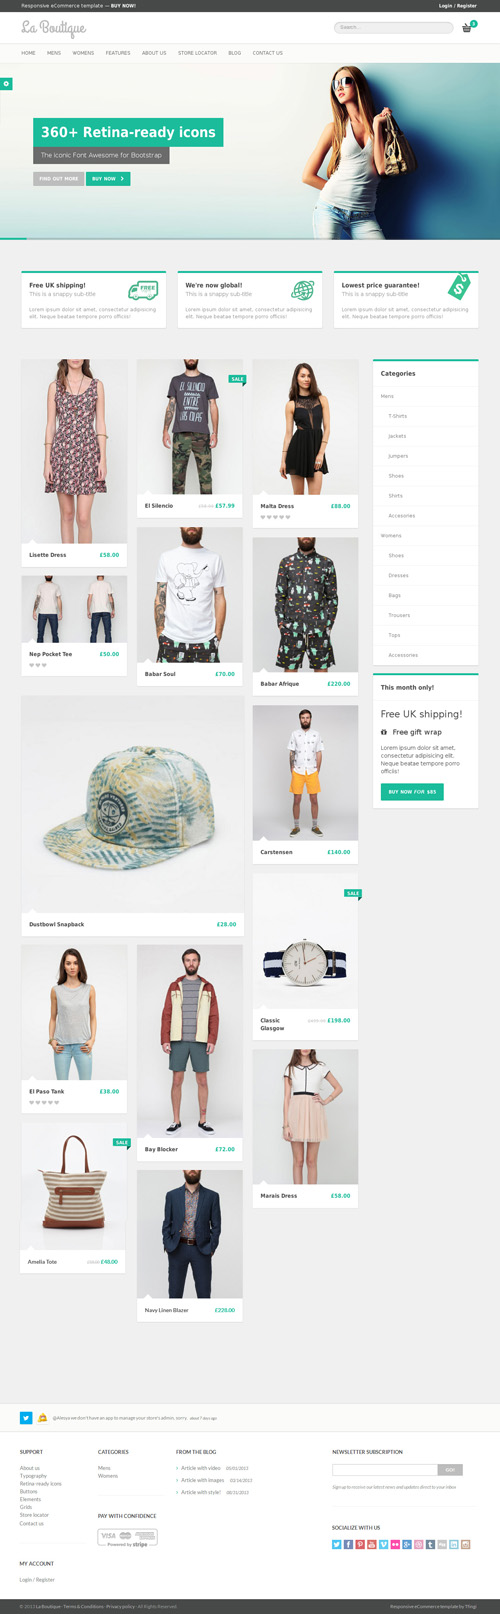 La Boutique - Responsive eCommerce Template